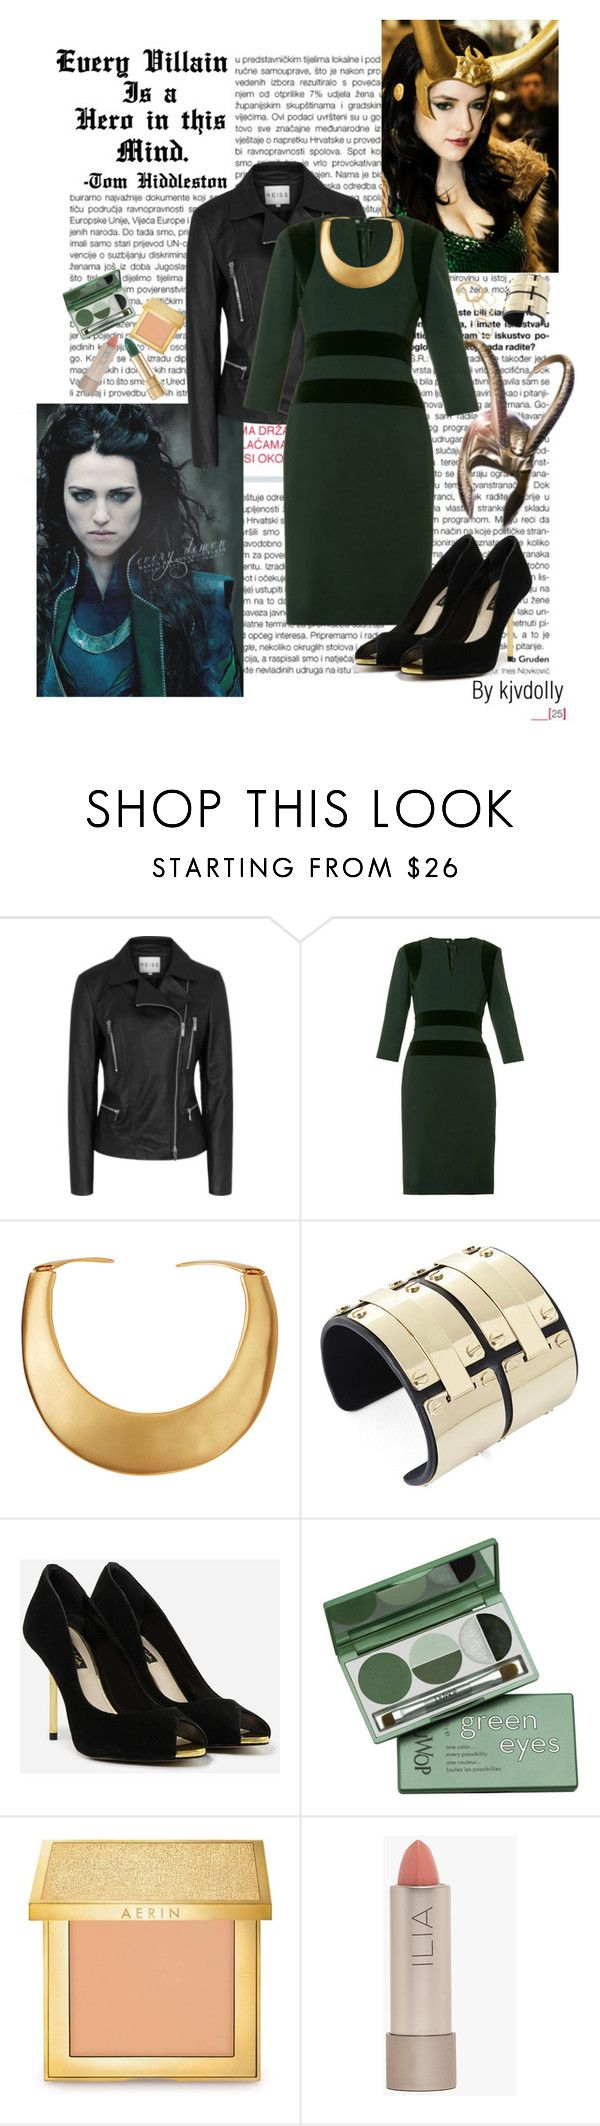 """Lady Loki"" by kjvdolly ❤ liked on Polyvore featuring Reiss, Alexander McQueen, Kenneth Jay Lane, BCBGMAXAZRIA, CHARLES & KEITH, DuWop, AERIN and Ilia"